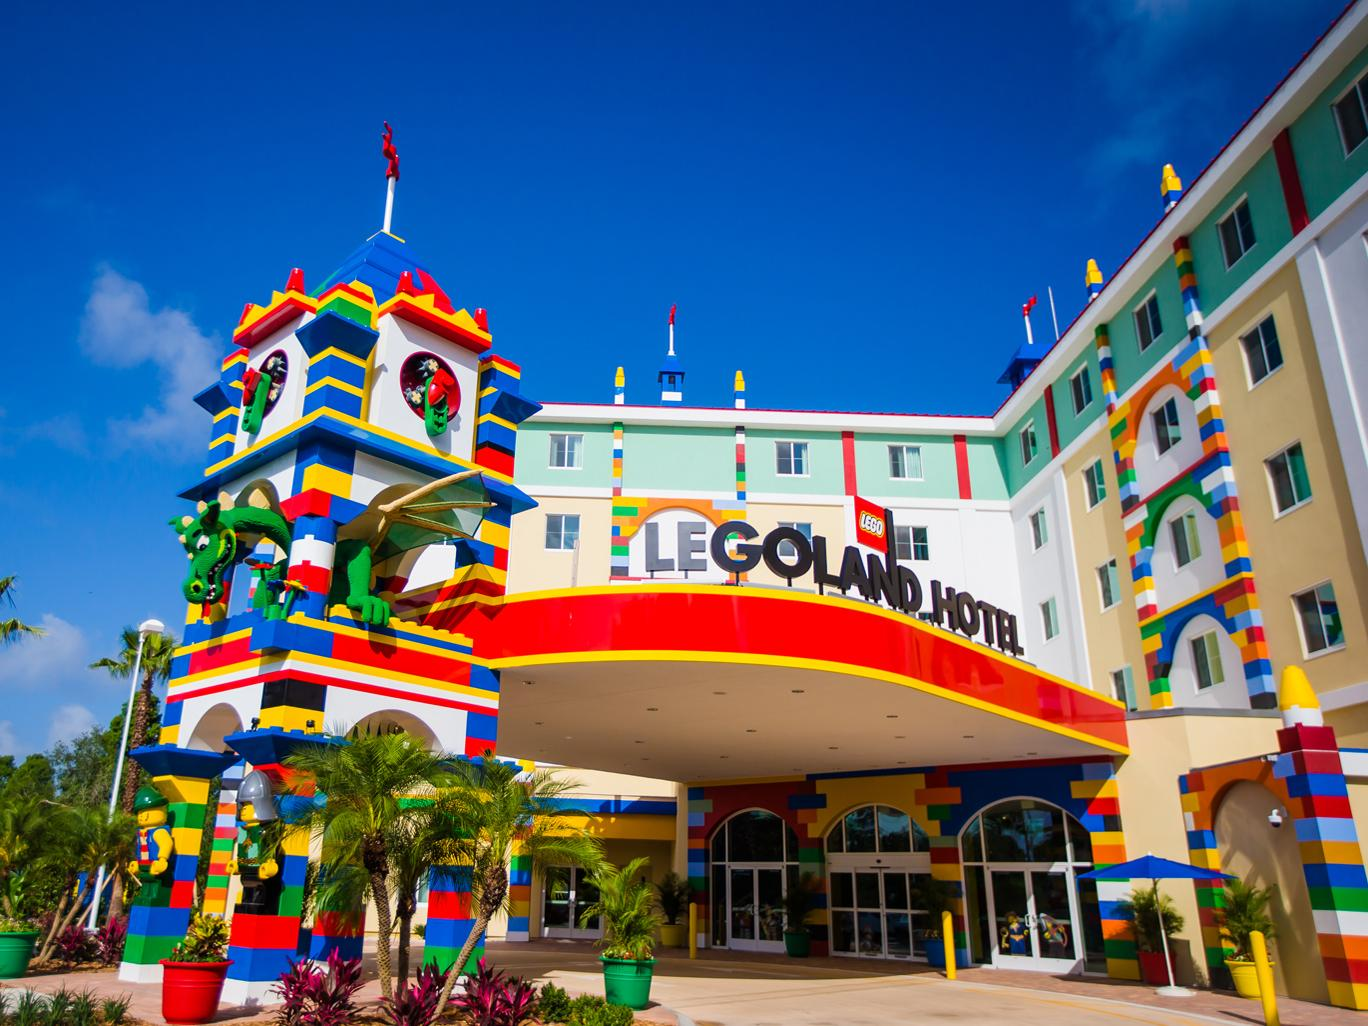 LEGOLAND Hotel at LEGOLAND Florida Resort